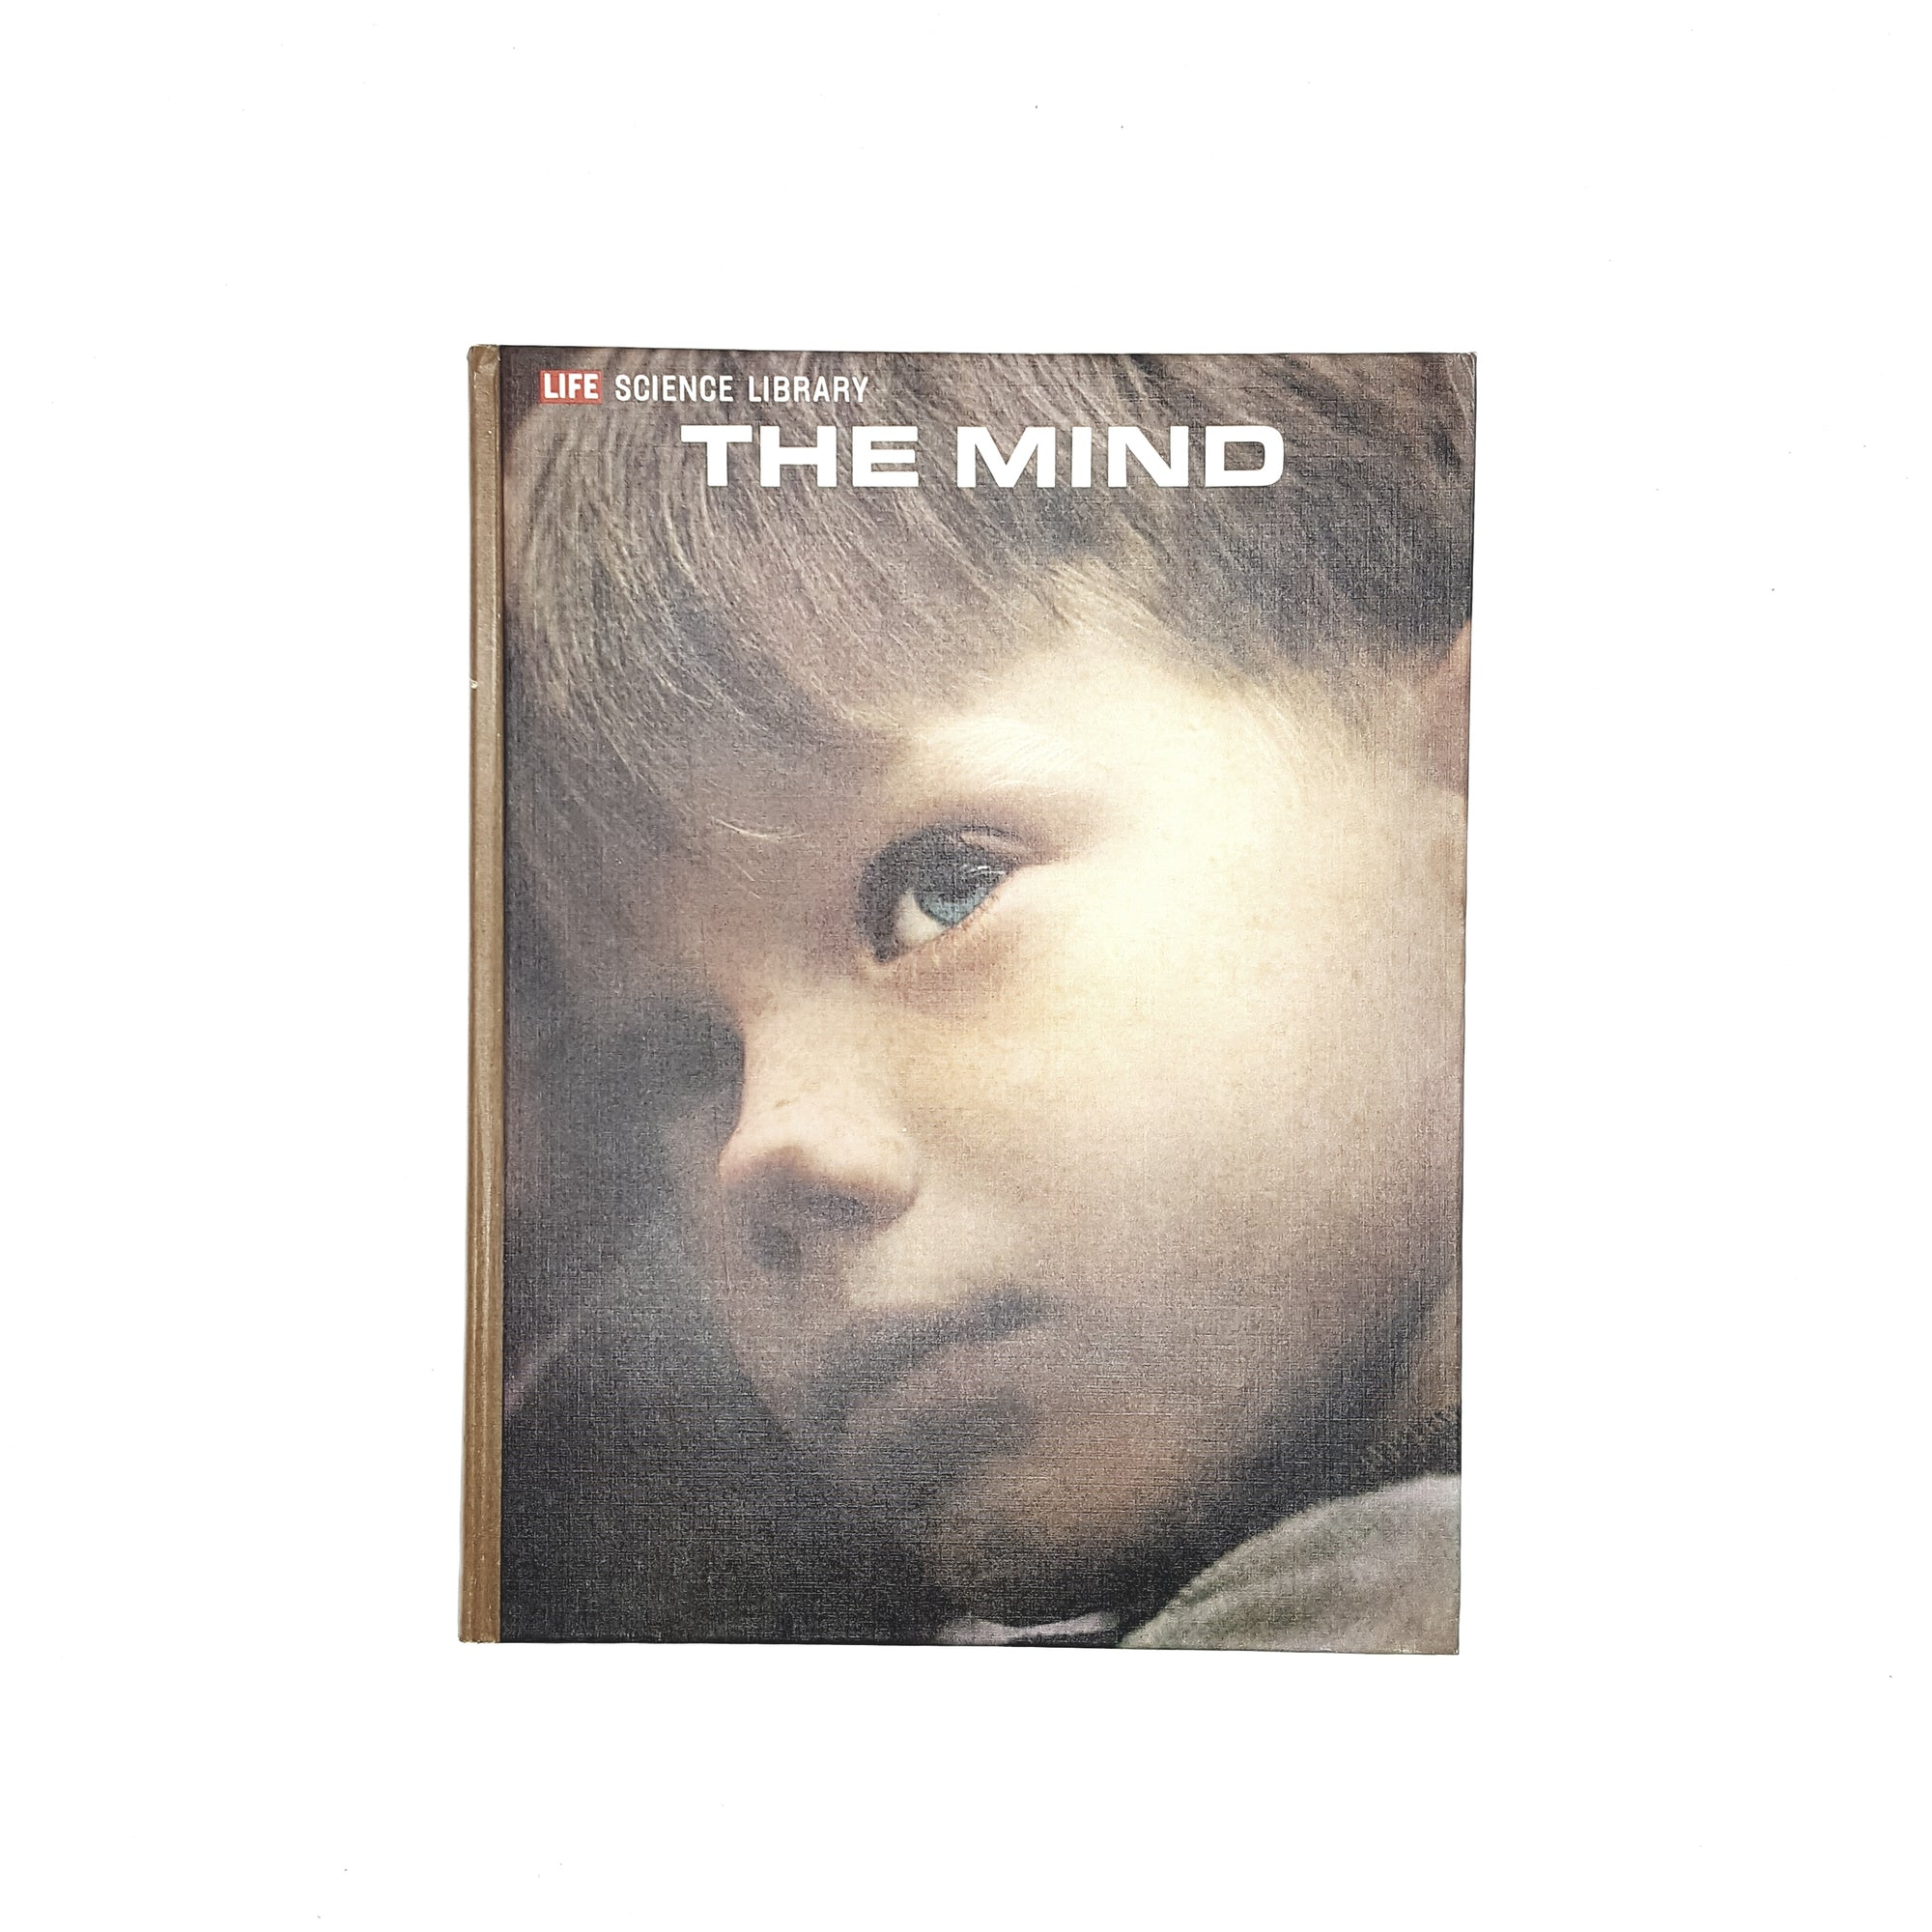 Life Science Library: The Mind 1971